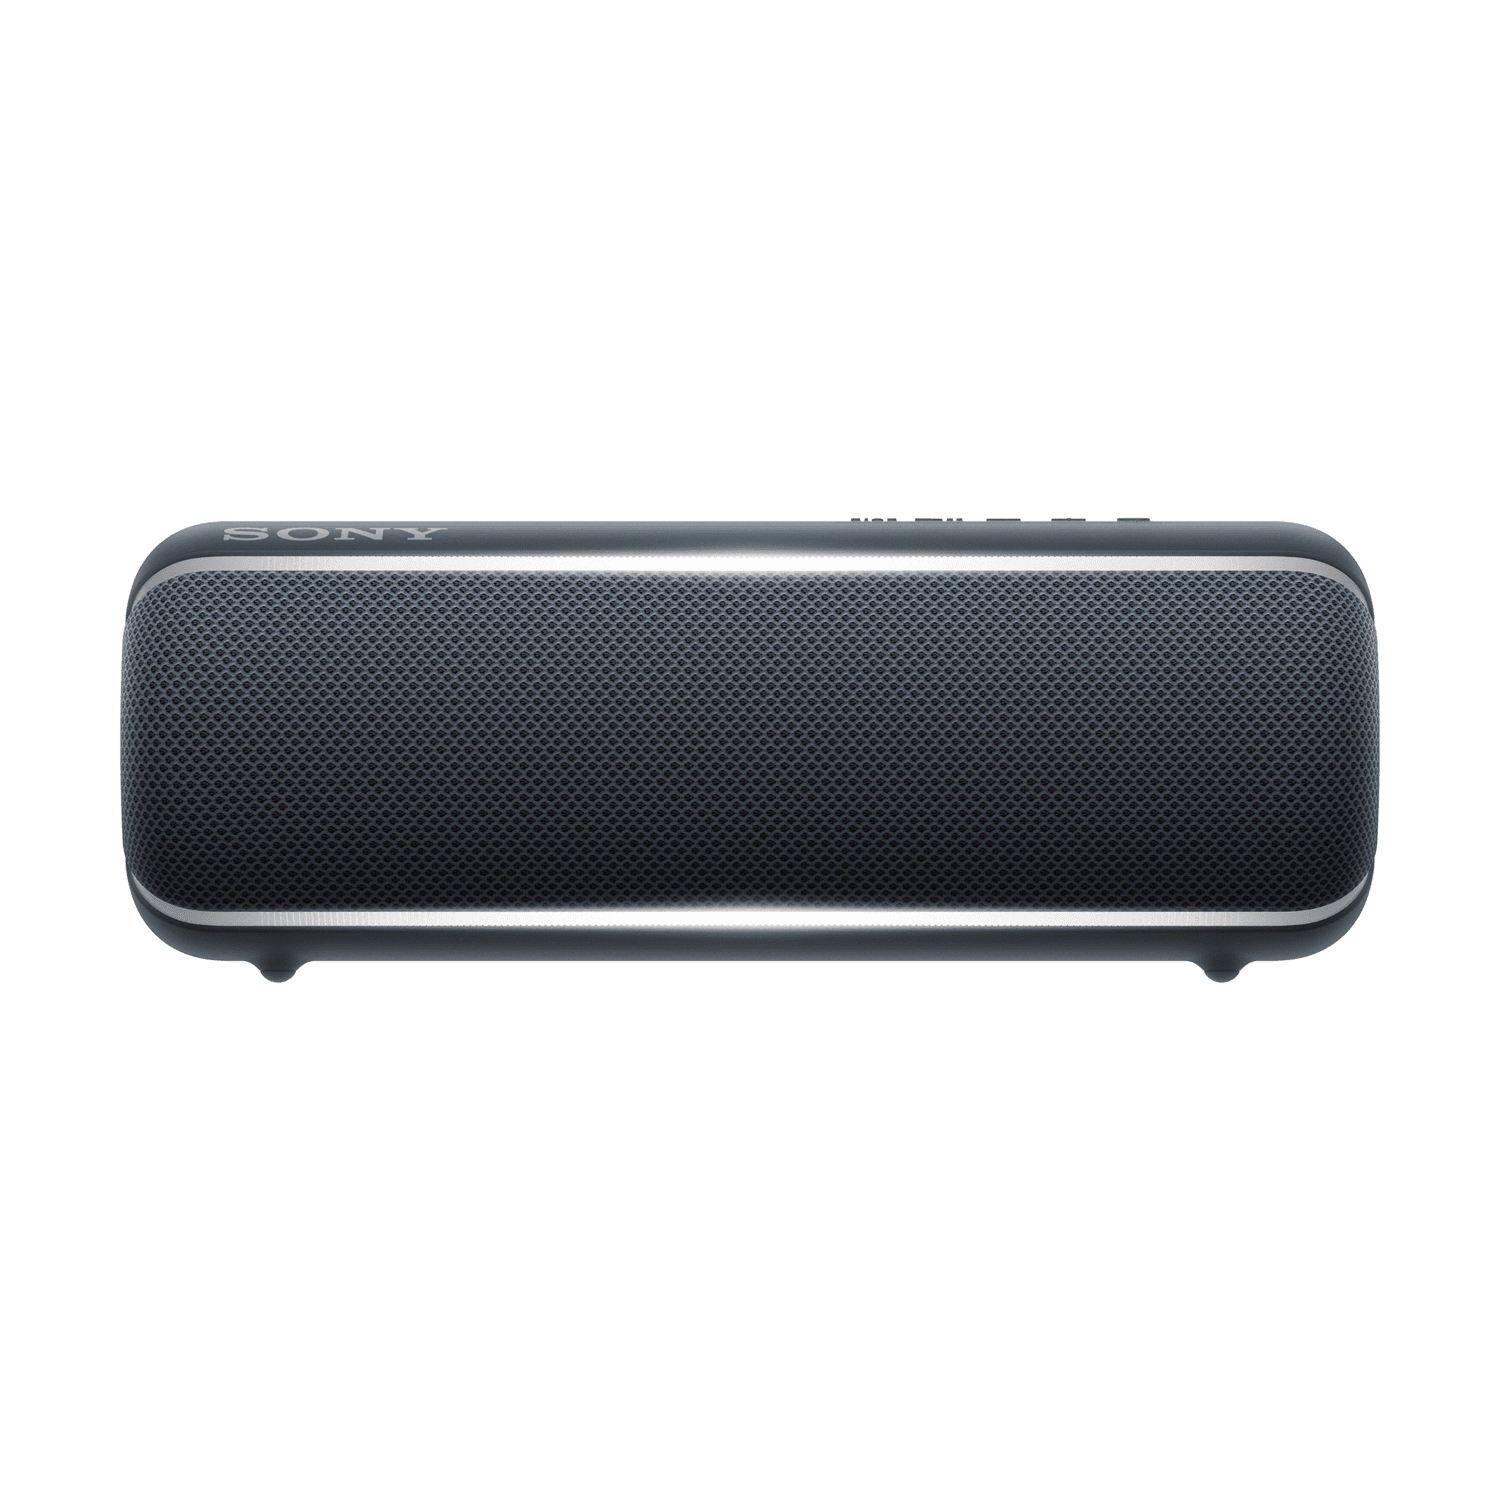 XB22 EXTRA BASS Portable BLUETOOTH Speaker (Black), , product-image